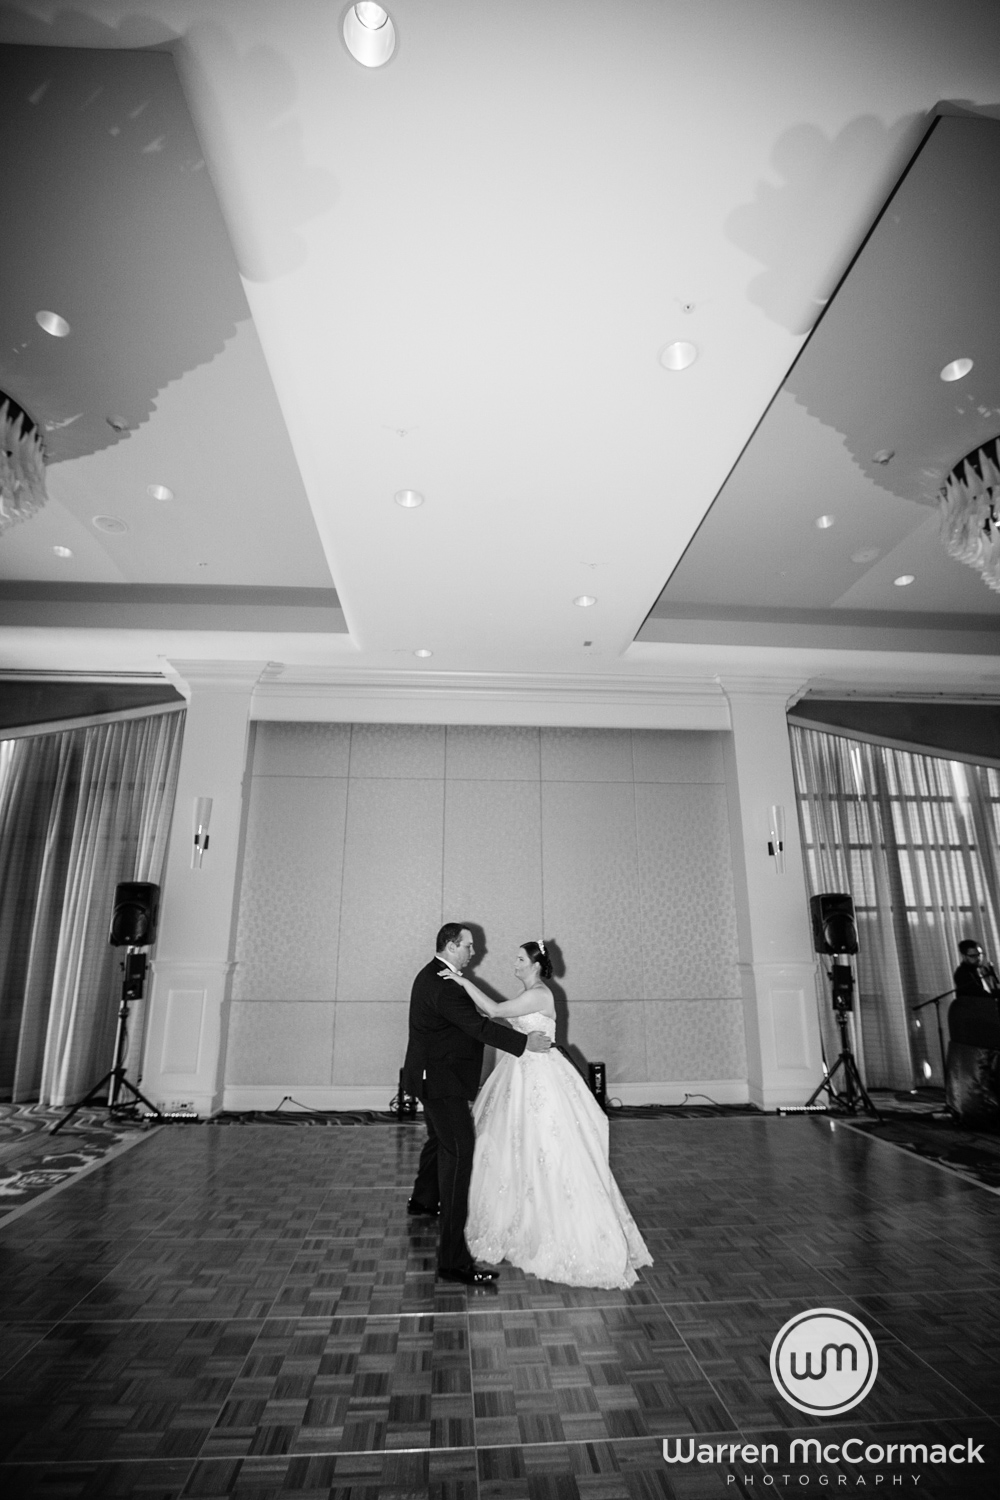 Raleigh North Carolina Wedding Photography - Warren McCormack Photography33.jpg